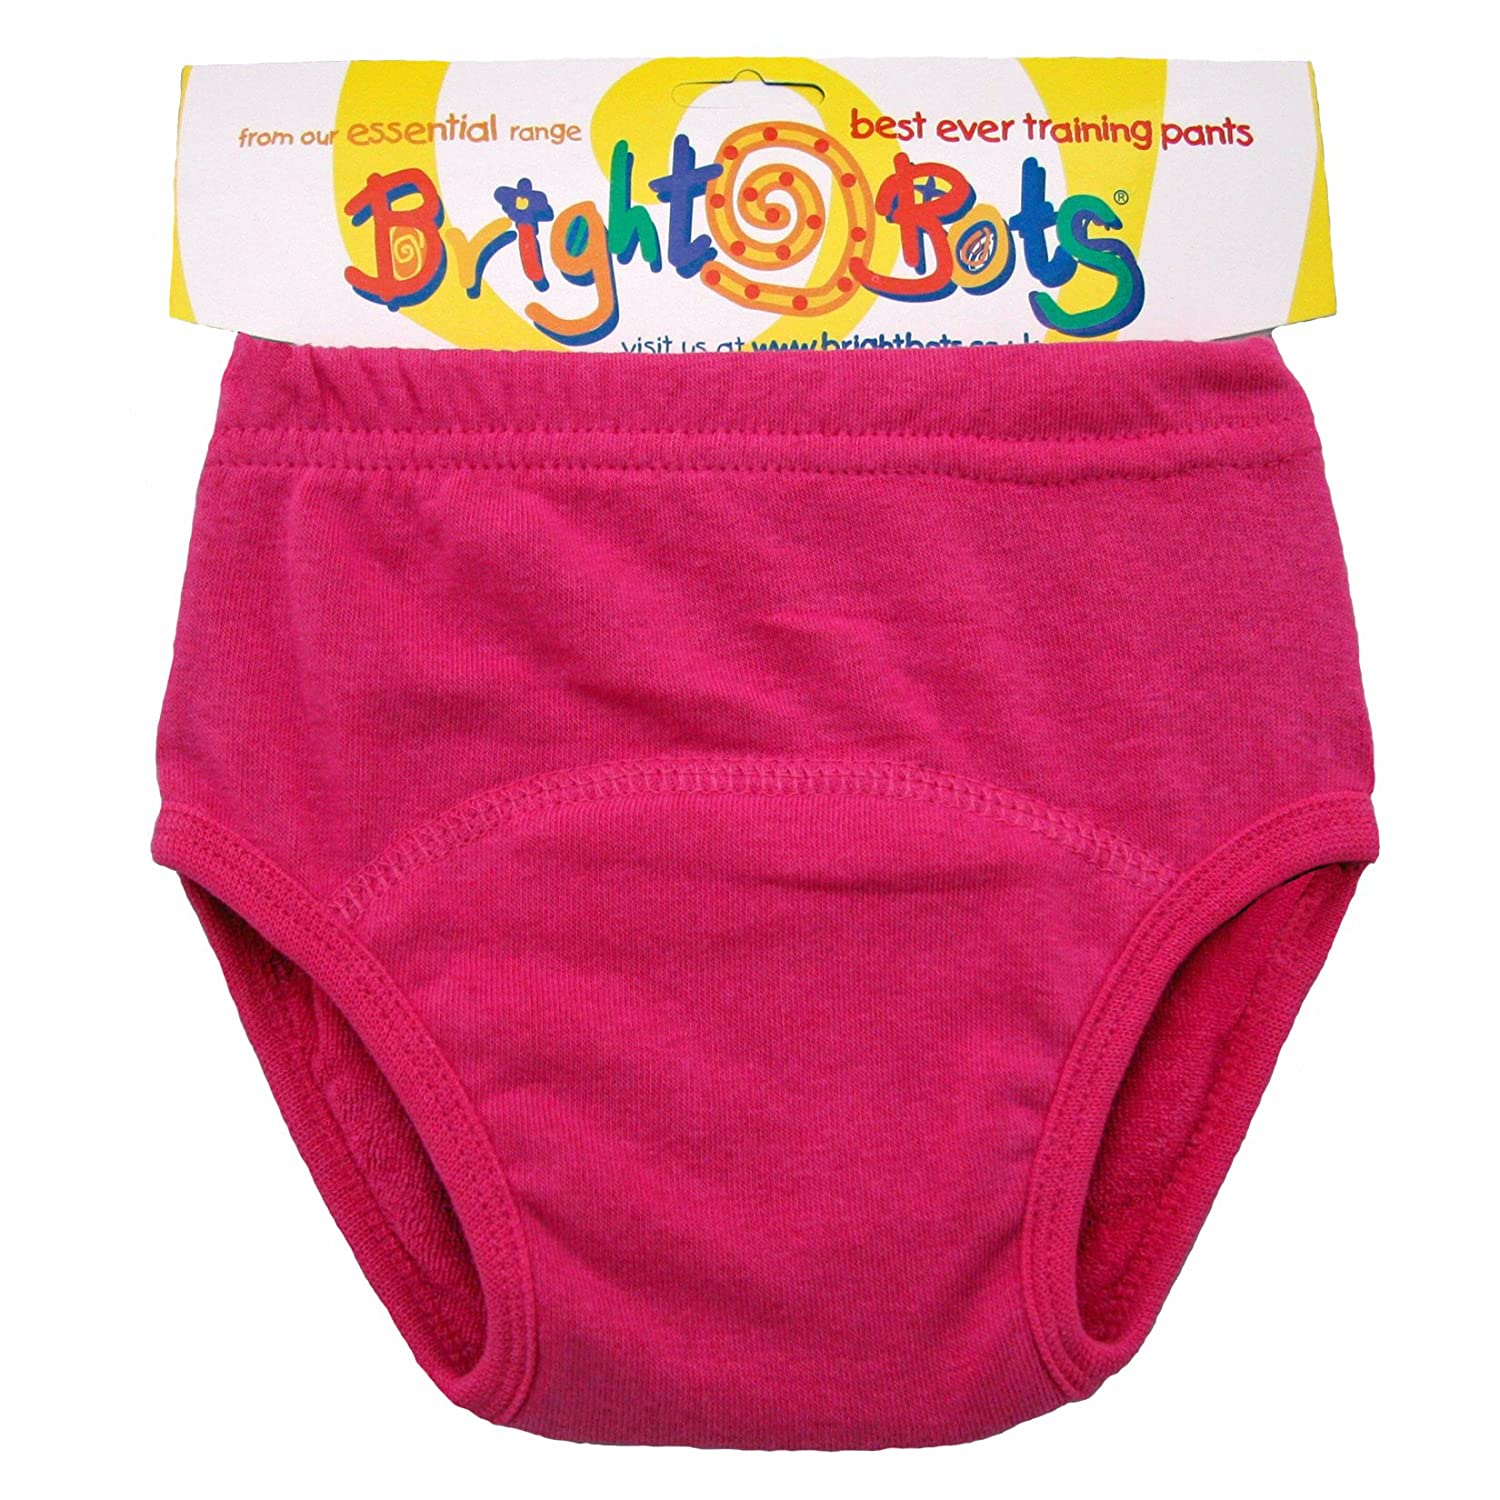 Bright Bots Washable Potty Training Pants - Purple Small (12-18 months) 2AAETRA1-PS